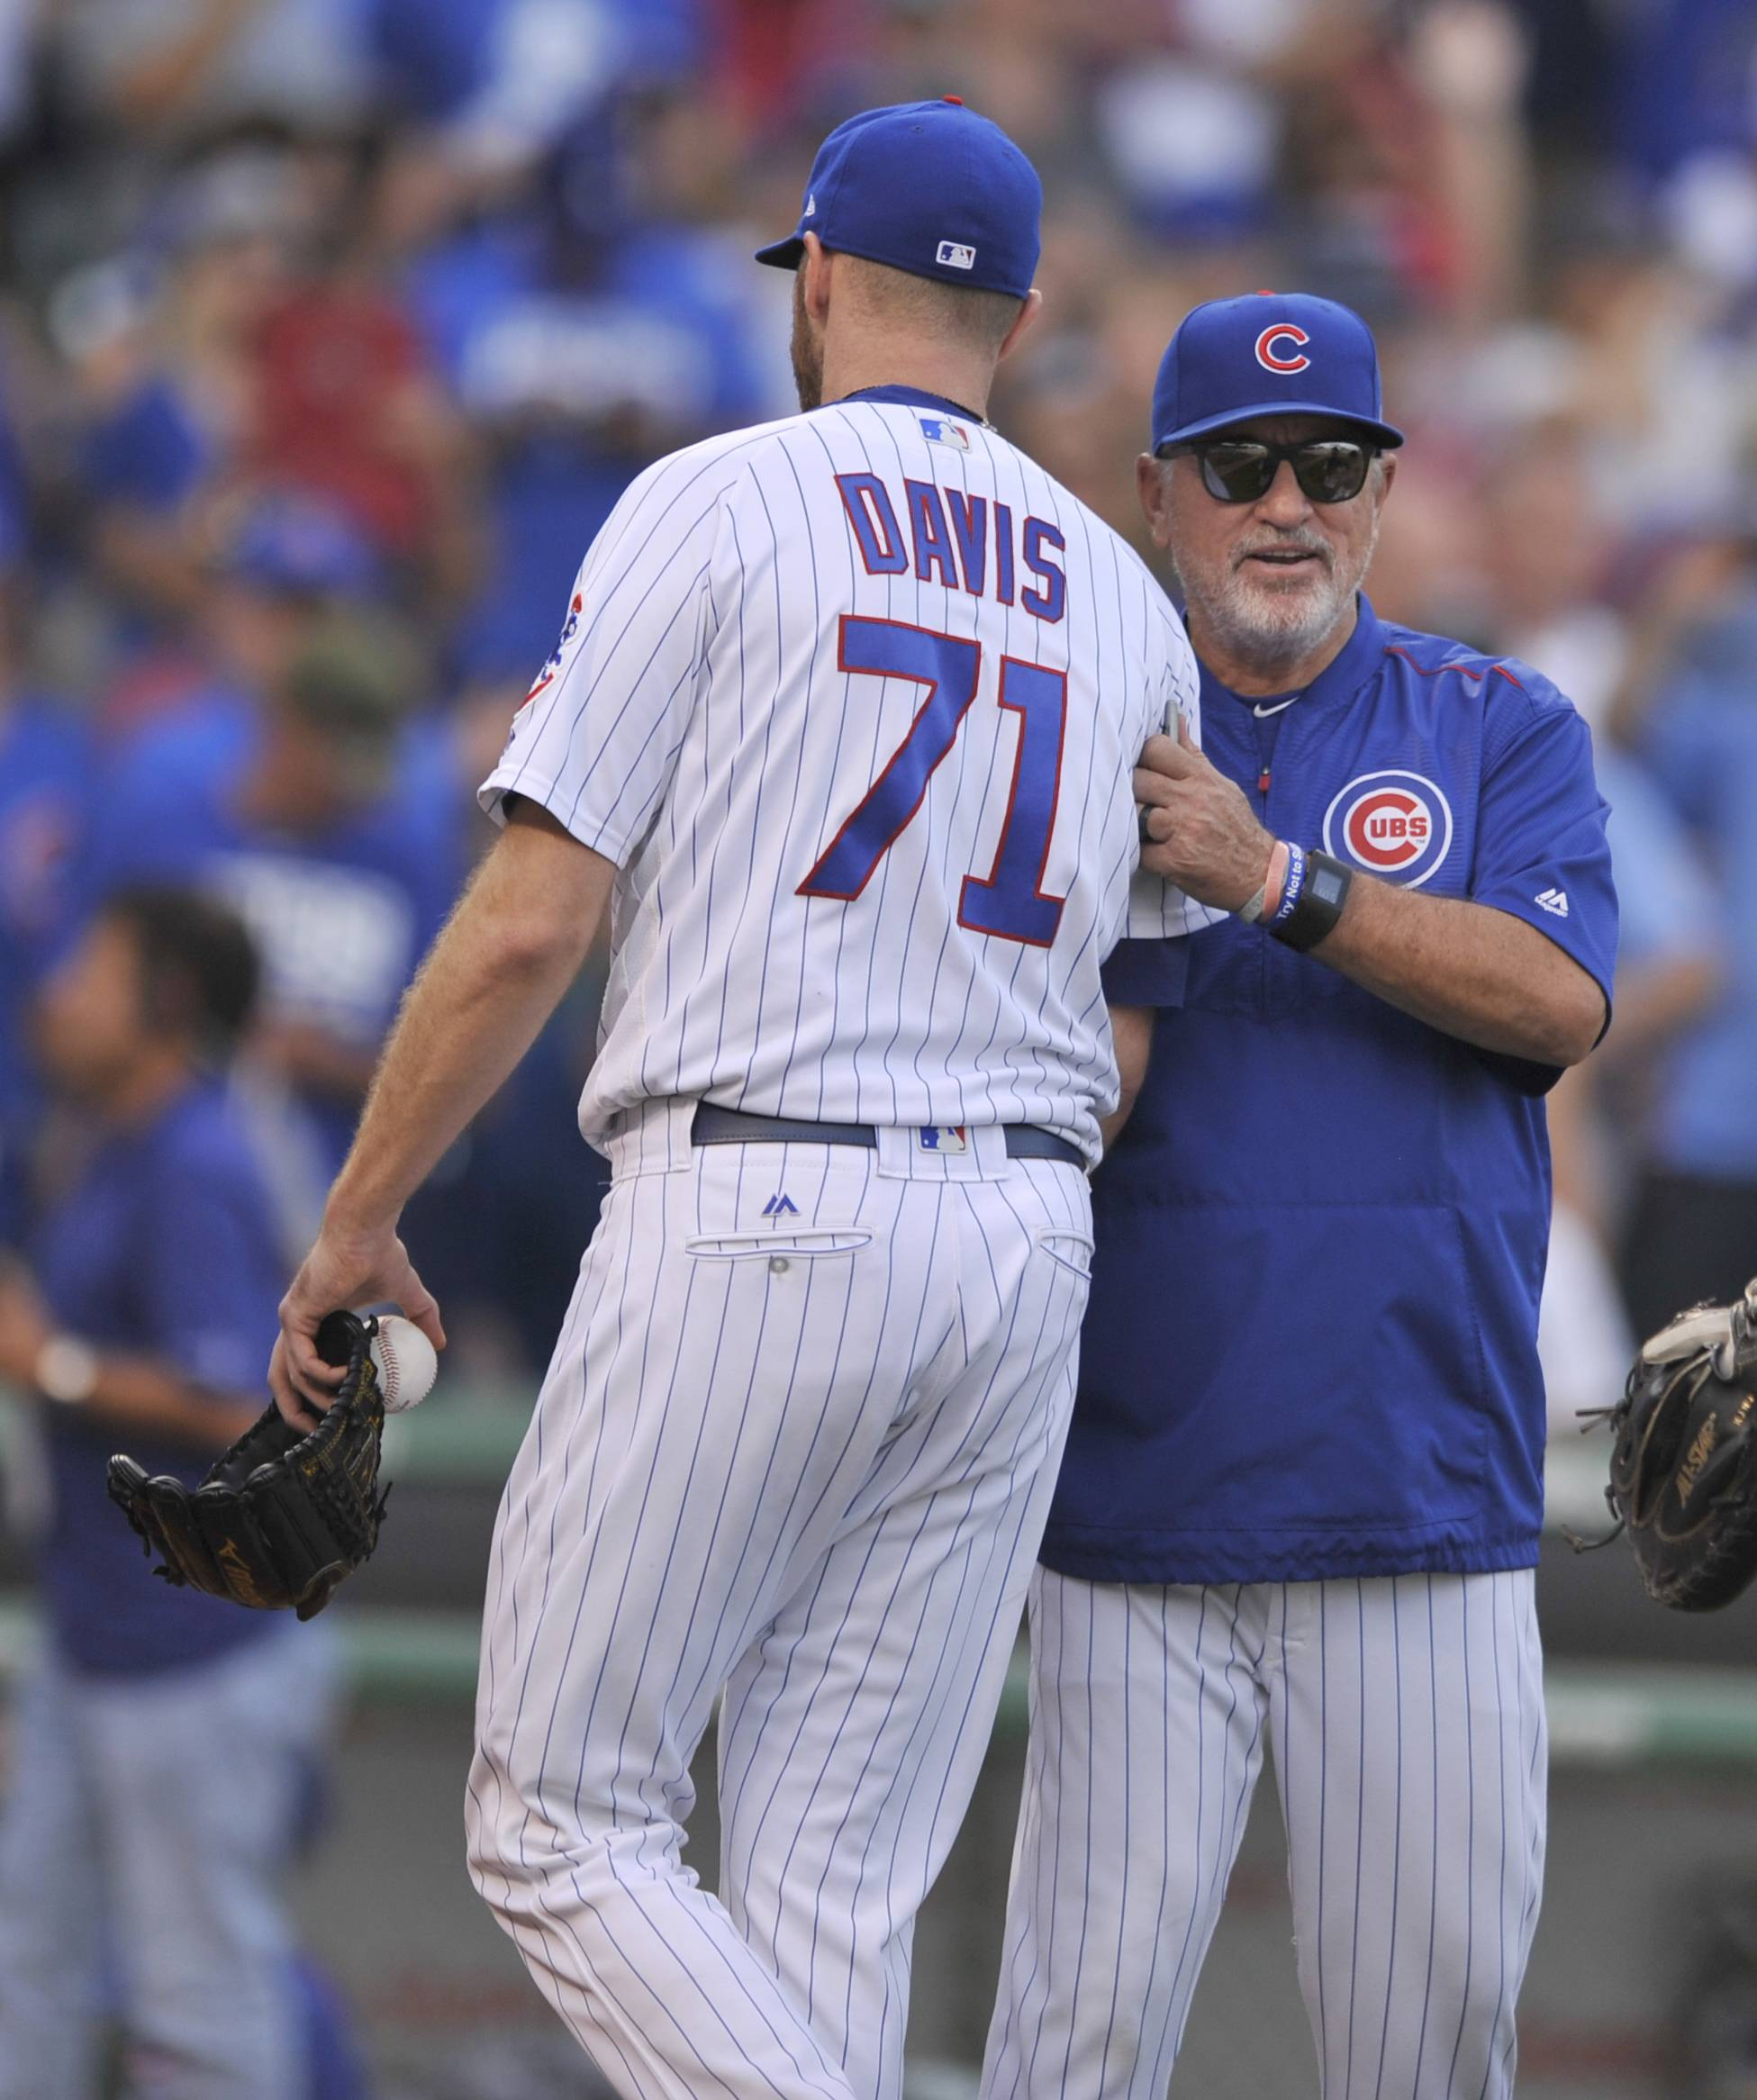 Chicago Cubs closing pitcher Wade Davis (71) celebrates with manager Joe Maddon right, after defeating the St. Louis Cardinals in a baseball game Sunday, Sept. 17, 2017, in Chicago. (AP Photo/Paul Beaty)